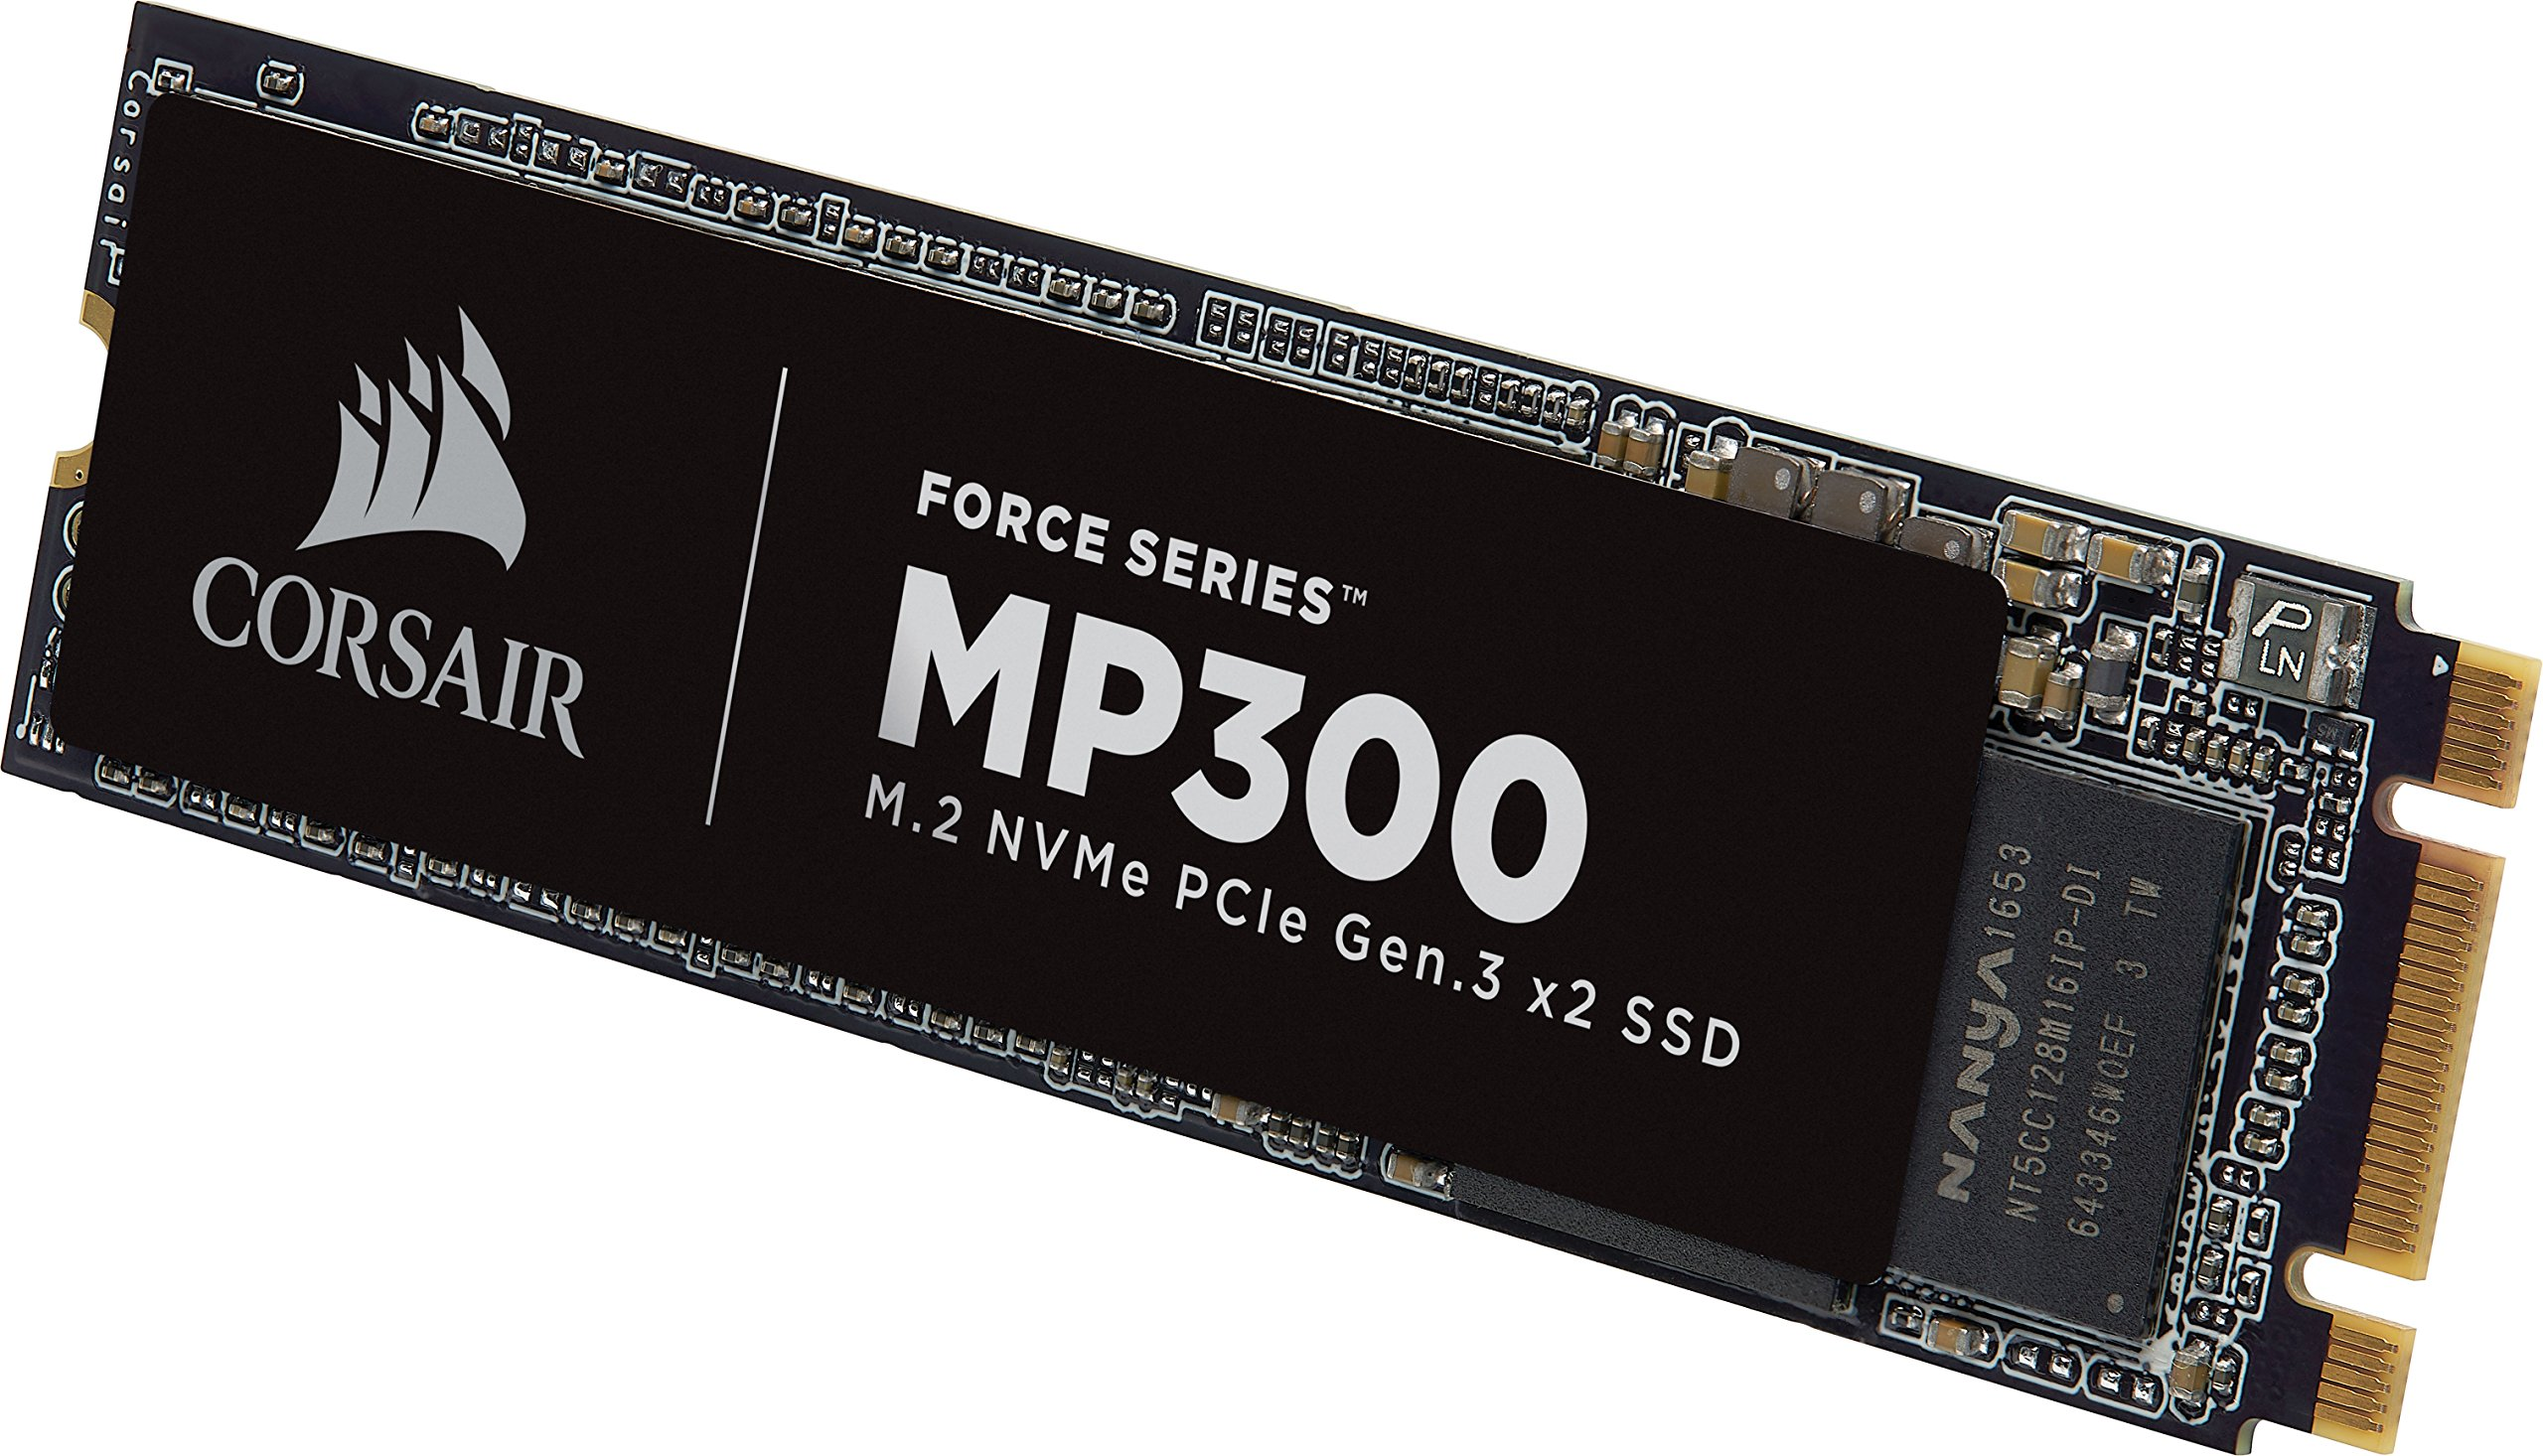 Computer_Drive_OR_Storage 2 High-speed NVMe PCI Express Gen 3 x2 Interface for speeds up to 1600MB/sec, 3x faster 6Gbps Utilizing state-of-the art, high-density 3D TLC NAND for the ideal mix of performance, endurance and value Compact M.2 2280 industry standard form factor fits directly into your notebook or motherboard